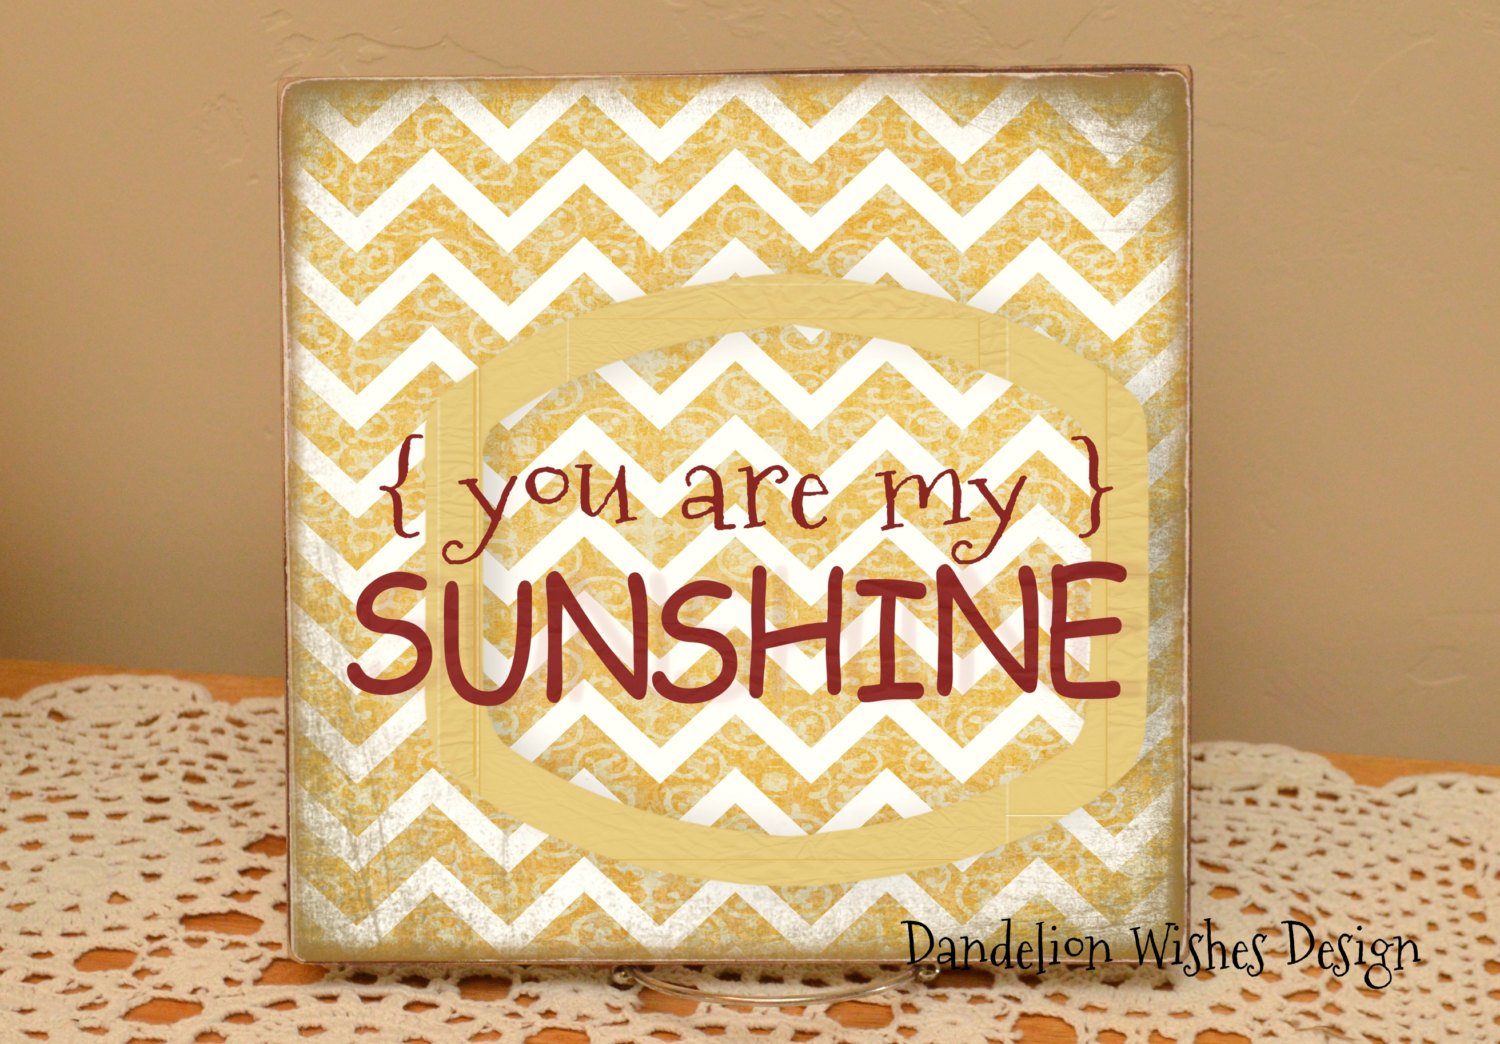 You Are My Sunshine Sign 12x12 by Dandelion Wishes Design on Zibbet 1500x1044